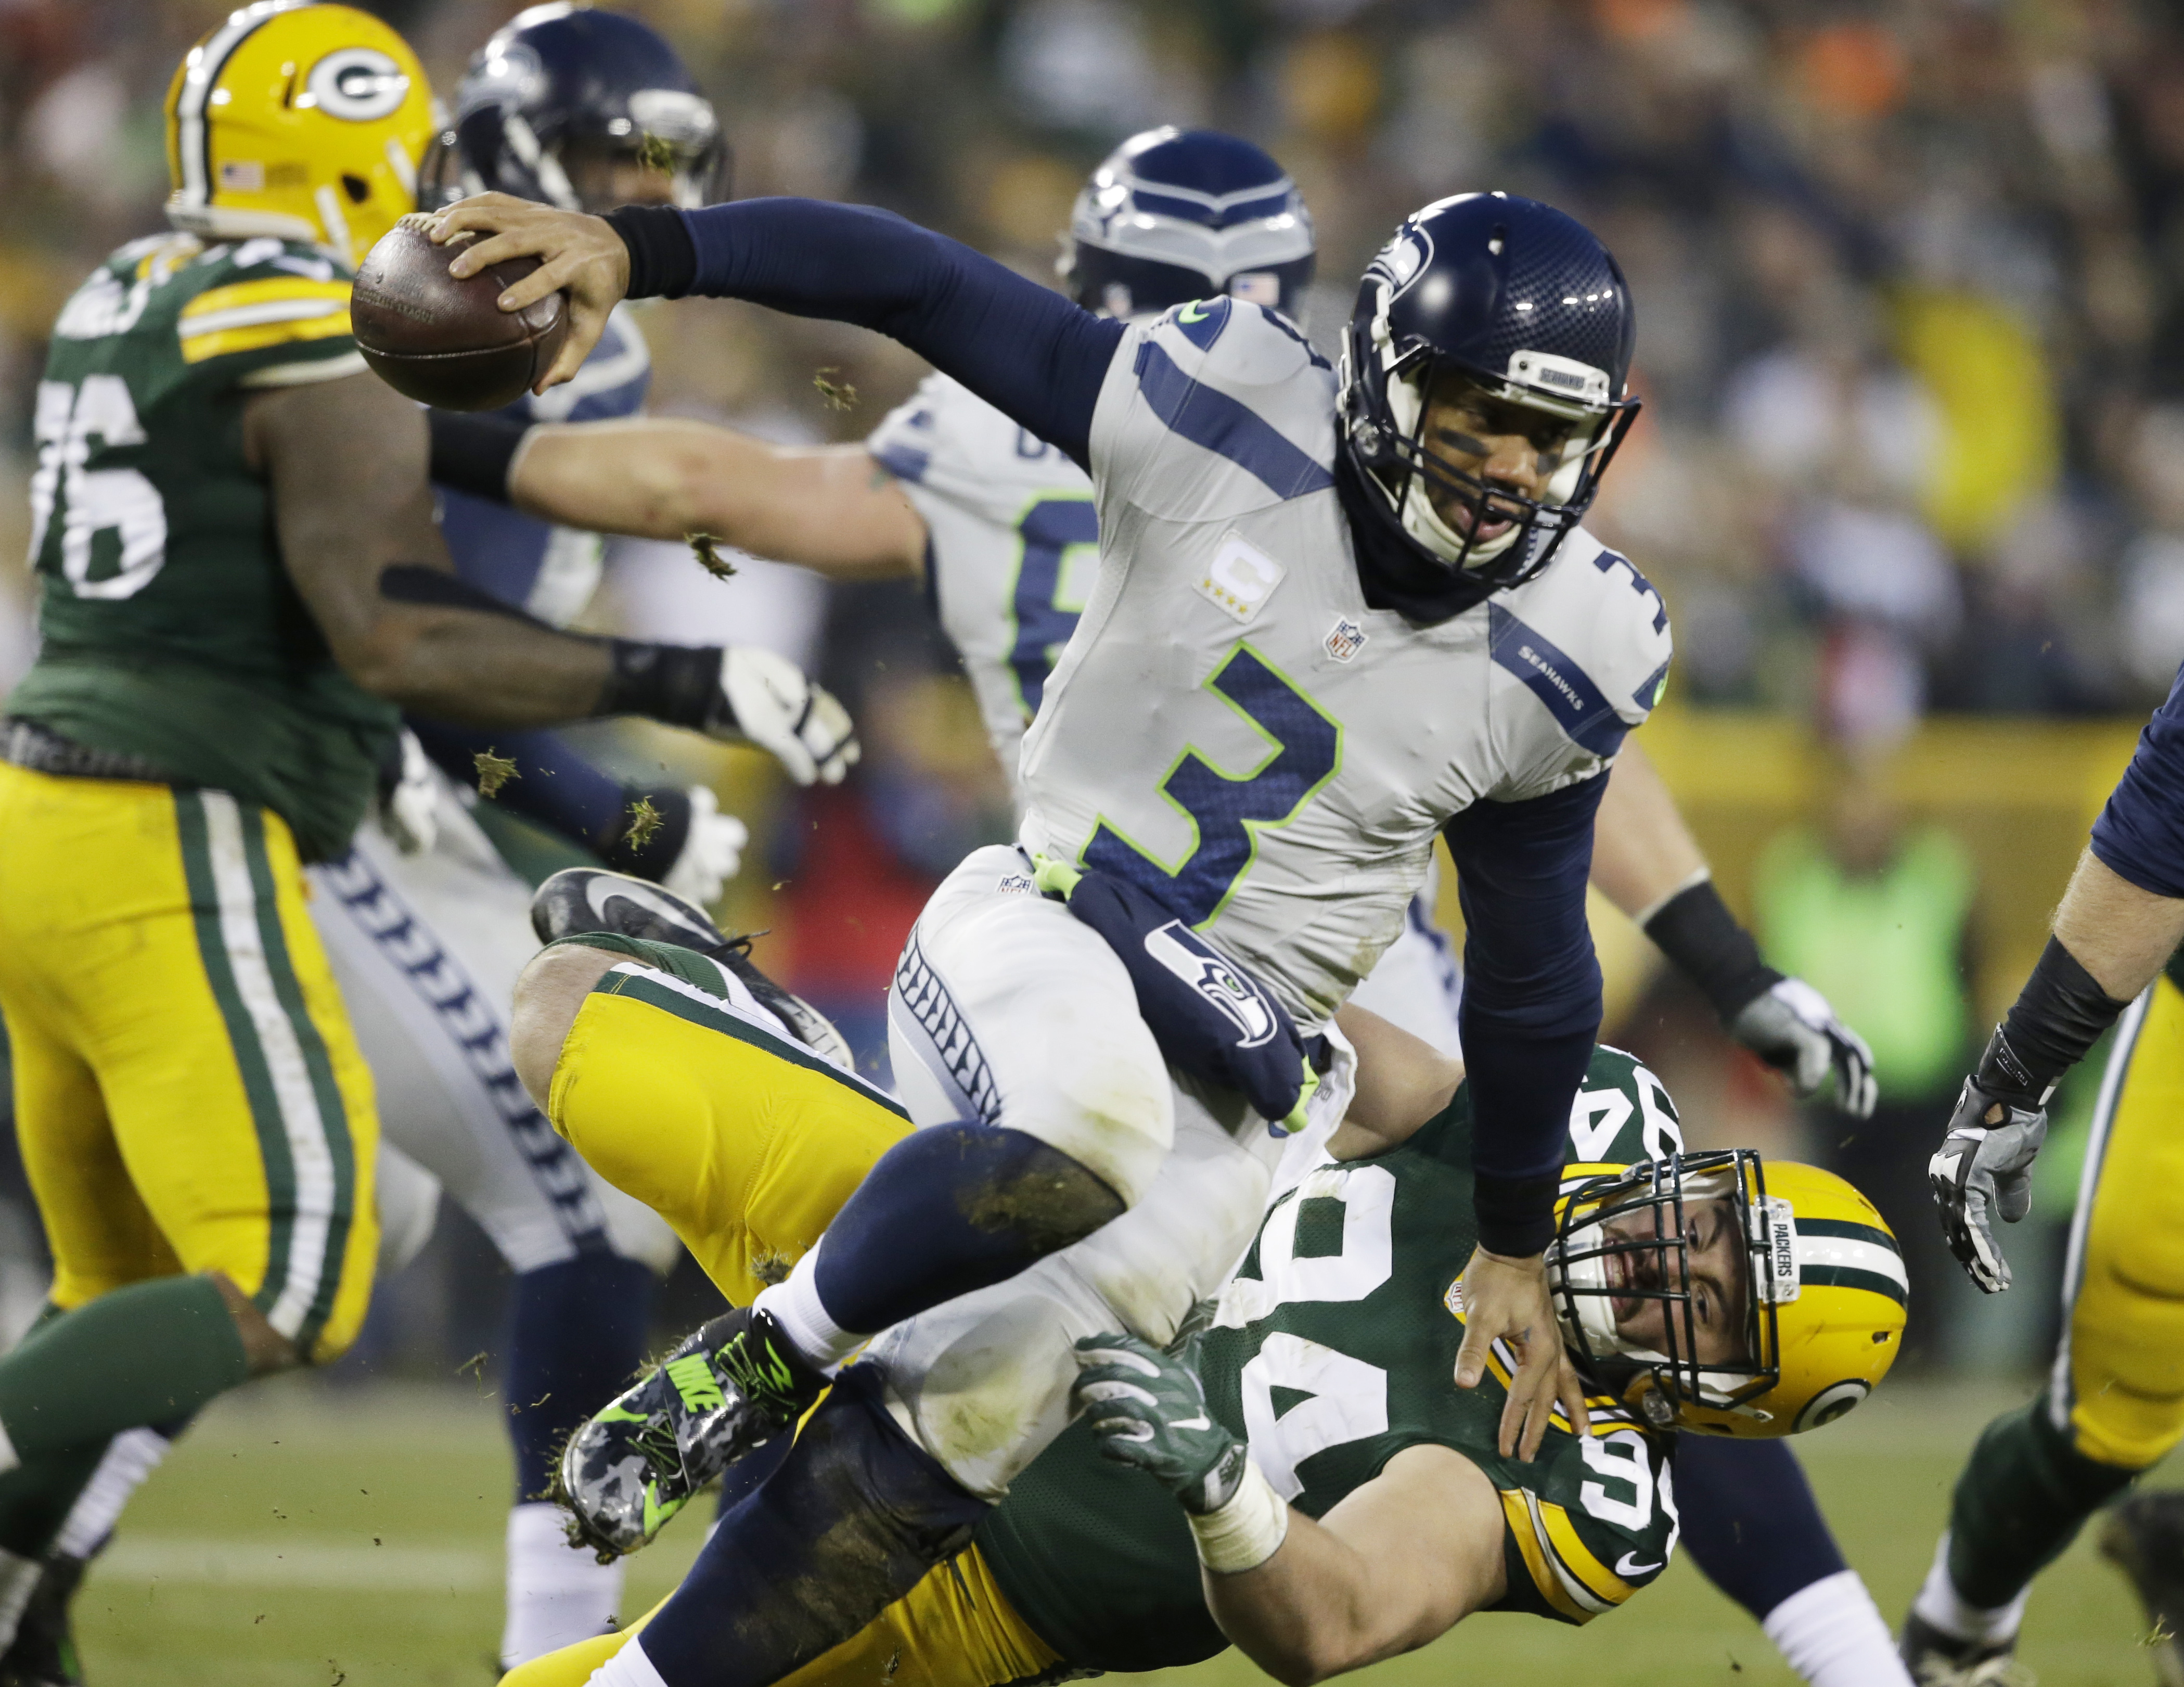 Green Bay Packers' Dean Lowry sacks Seattle Seahawks quarterback Russell Wilson during the first half of an NFL football game Sunday, Dec. 11, 2016, in Green Bay, Wis. (AP Photo/Jeffrey Phelps)